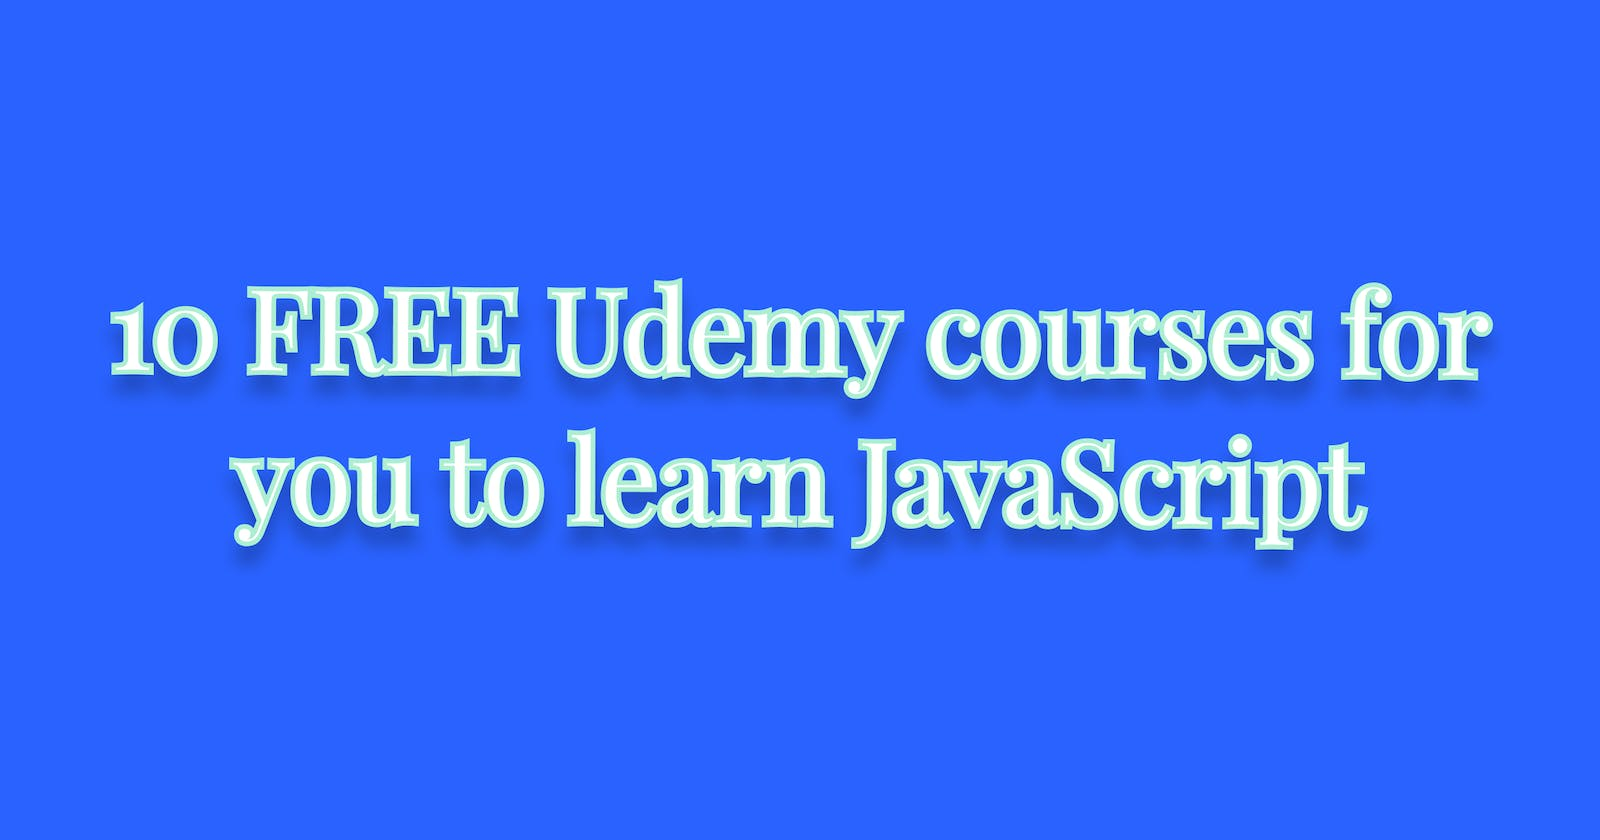 10 FREE Udemy courses for you to learn JavaScript